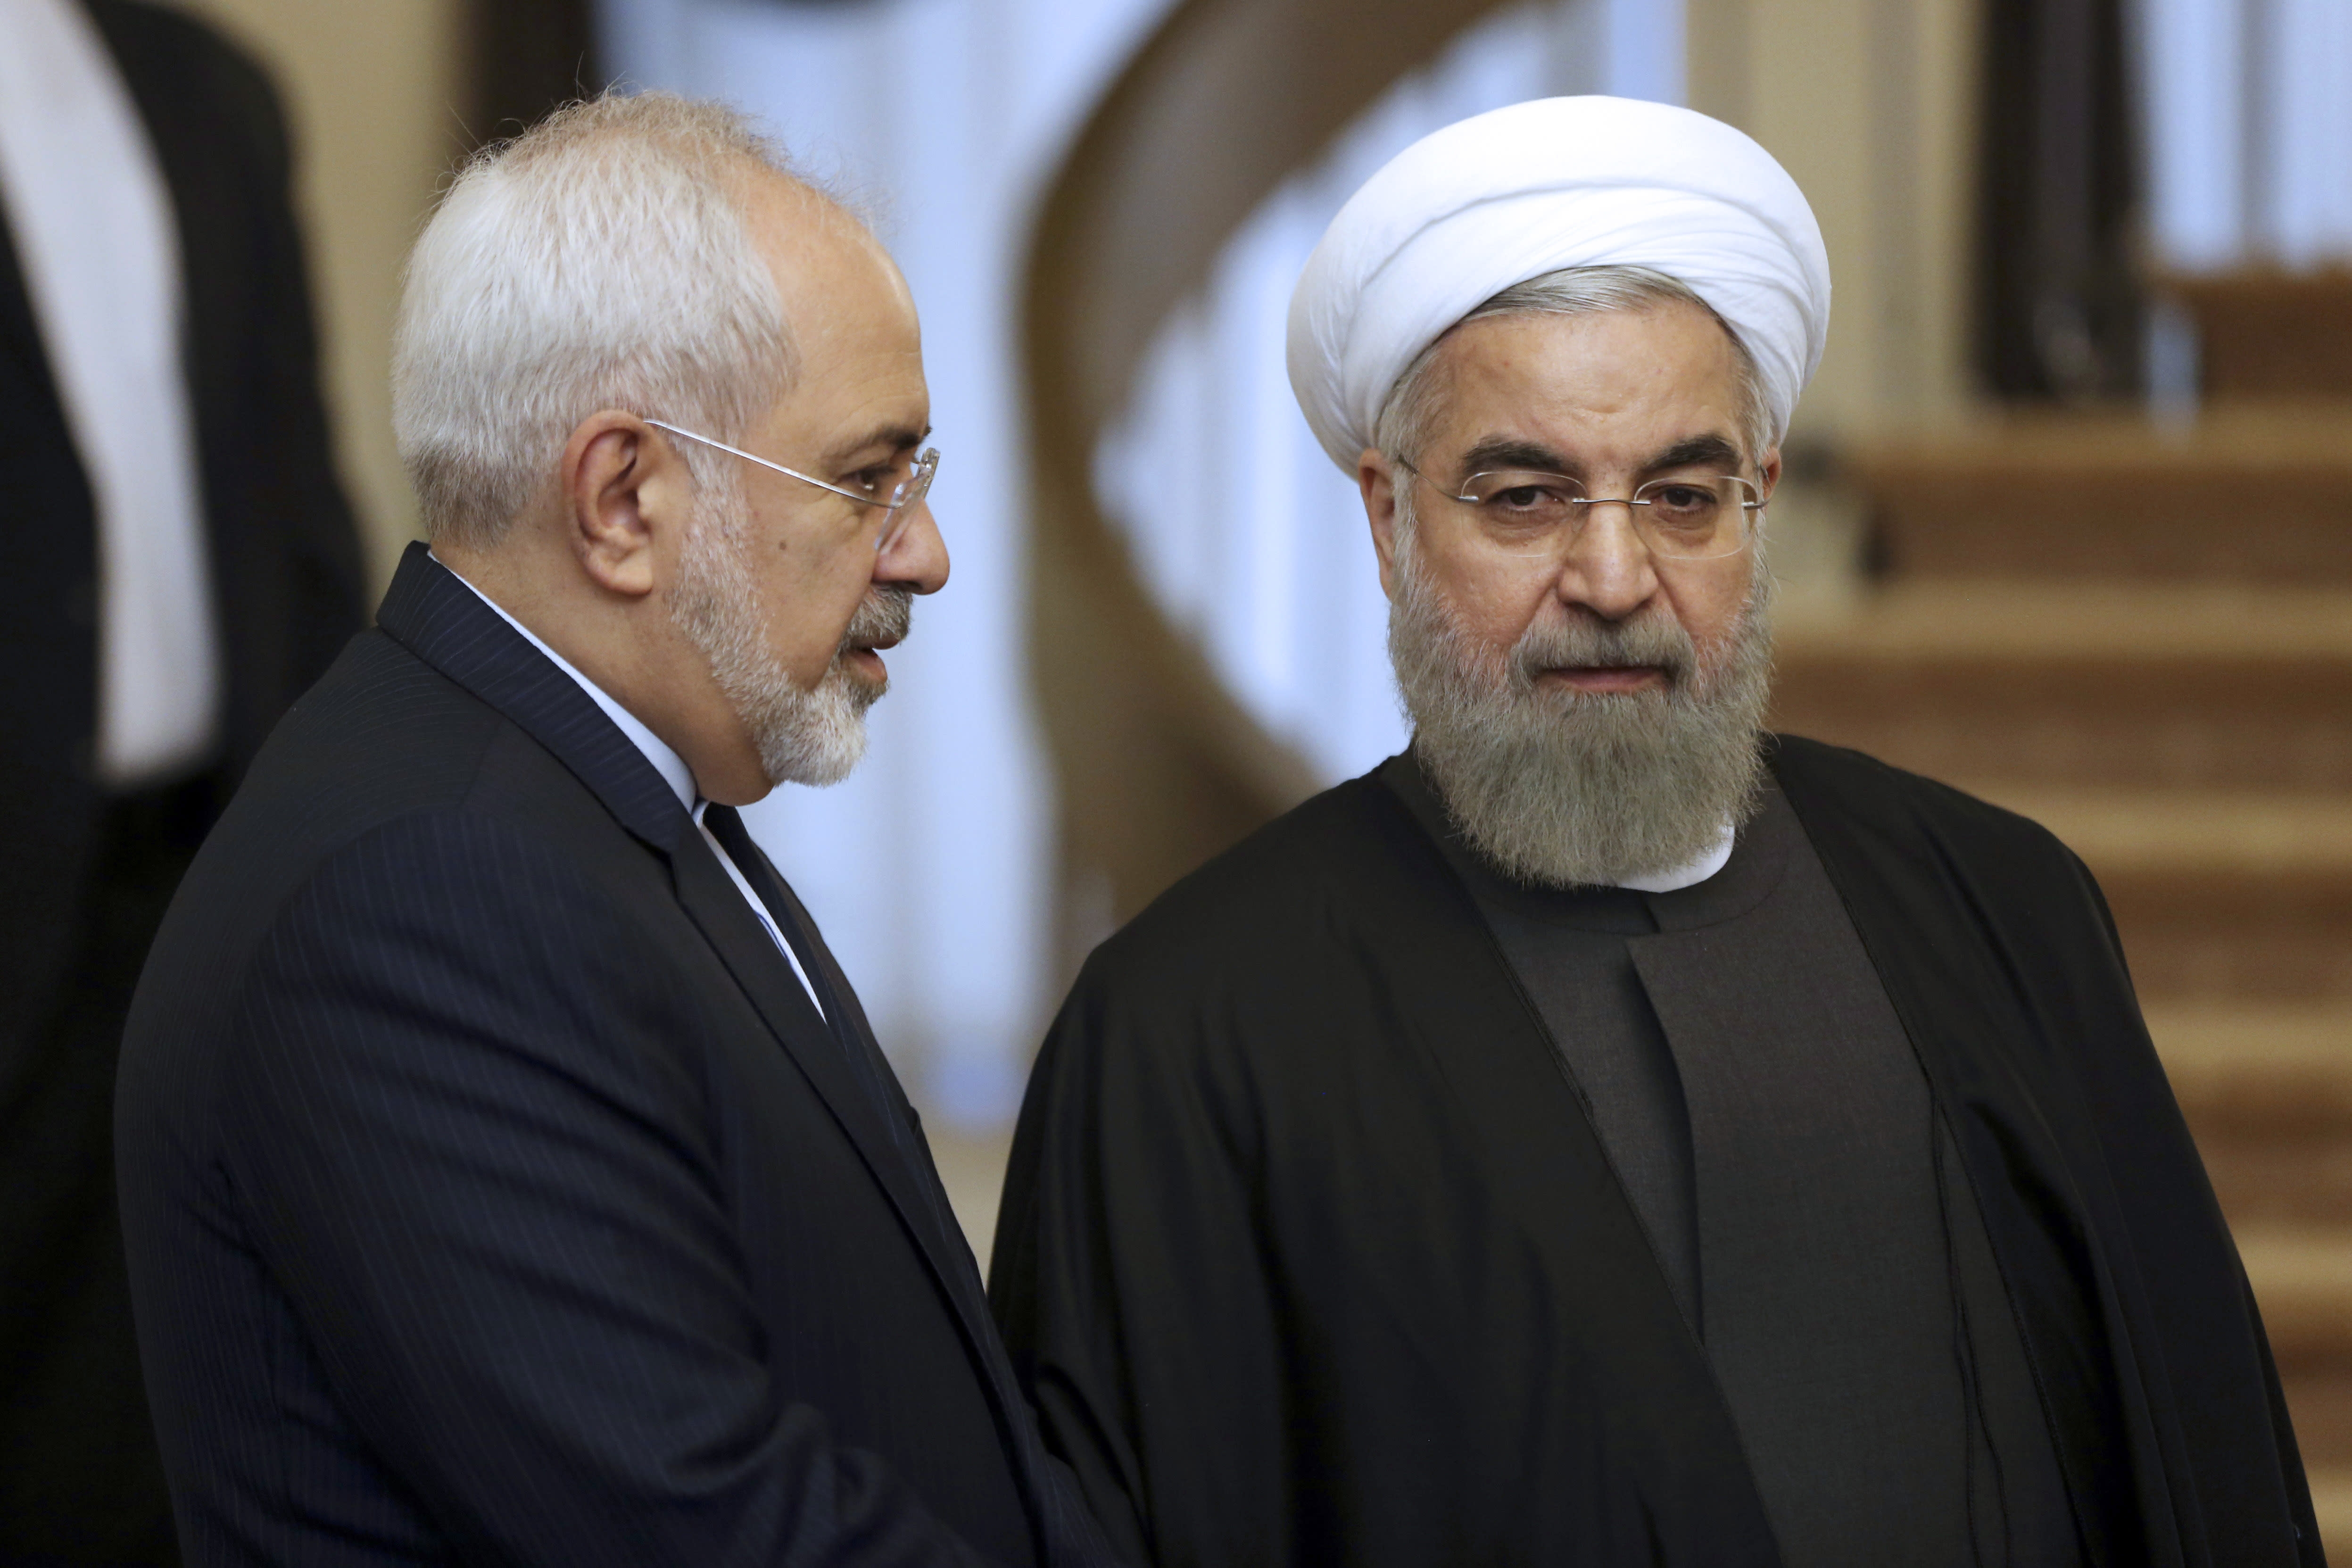 FILE - In this Nov. 24, 2015, file photo, Iranian President Hassan Rouhani, right, listens to his Foreign Minister Mohammad Javad Zarif prior to a meeting in Tehran, Iran. Rouhani is planning to make his first official visit to Iraq Monday, March 11, 2019, as he faces mounting pressure from hard-liners at home in the wake of the unravelling of the nuclear deal under the Trump administration. (AP Photo/Vahid Salemi, File)